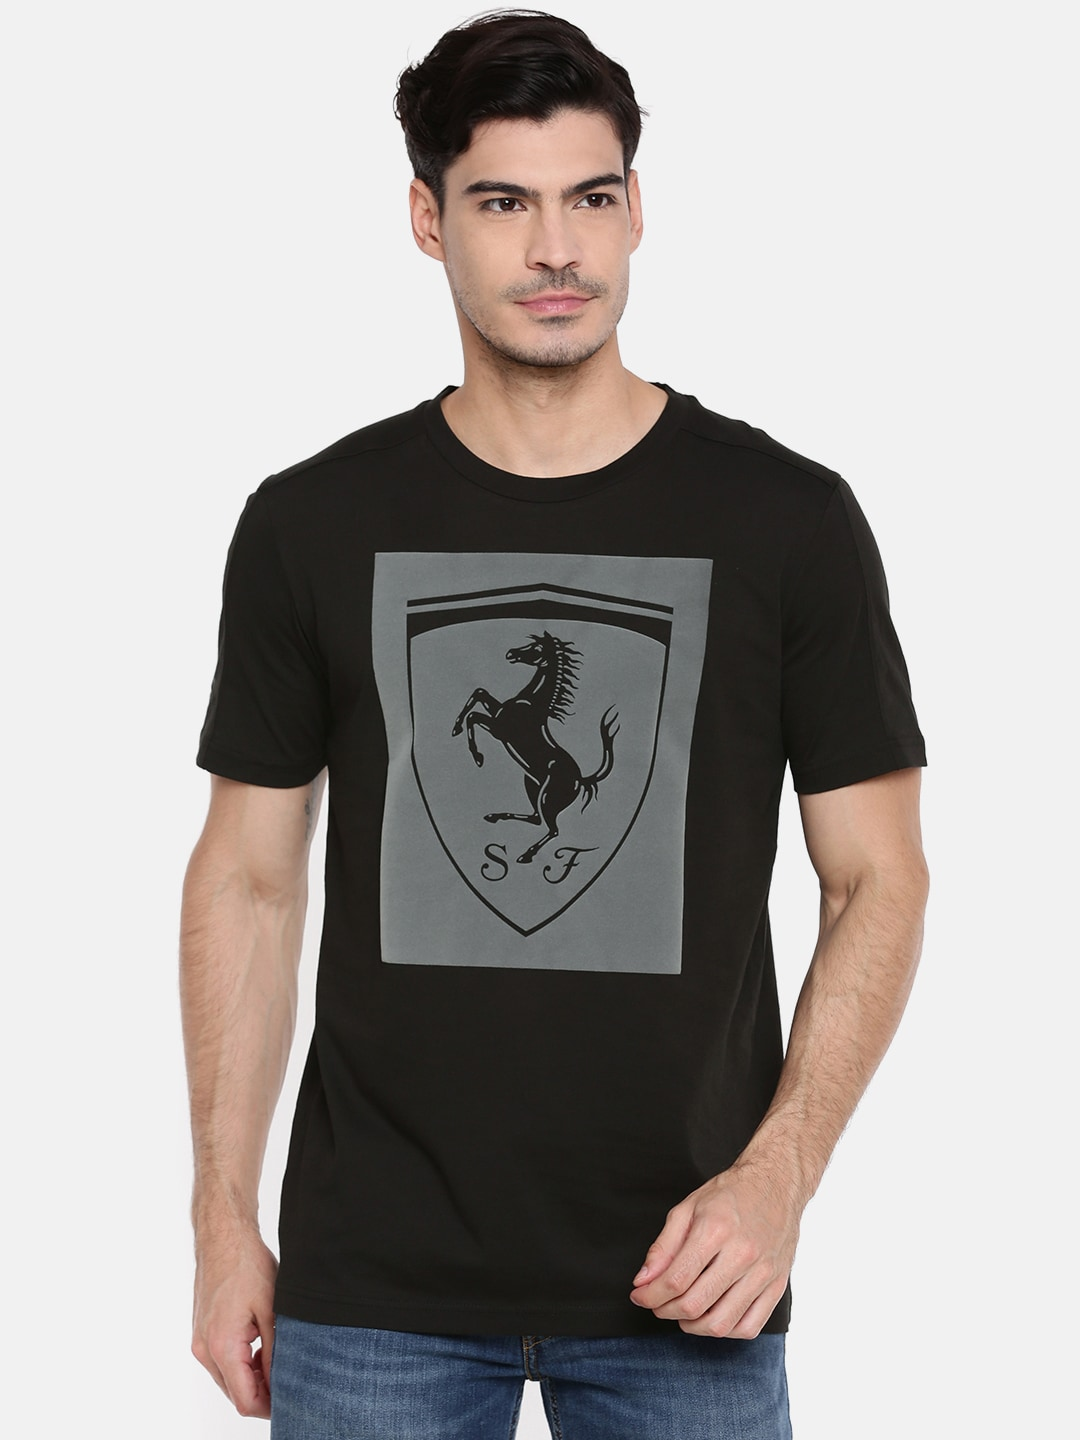 Puma T shirts - Buy Puma T Shirts For Men   Women Online in India dbfb7cc360